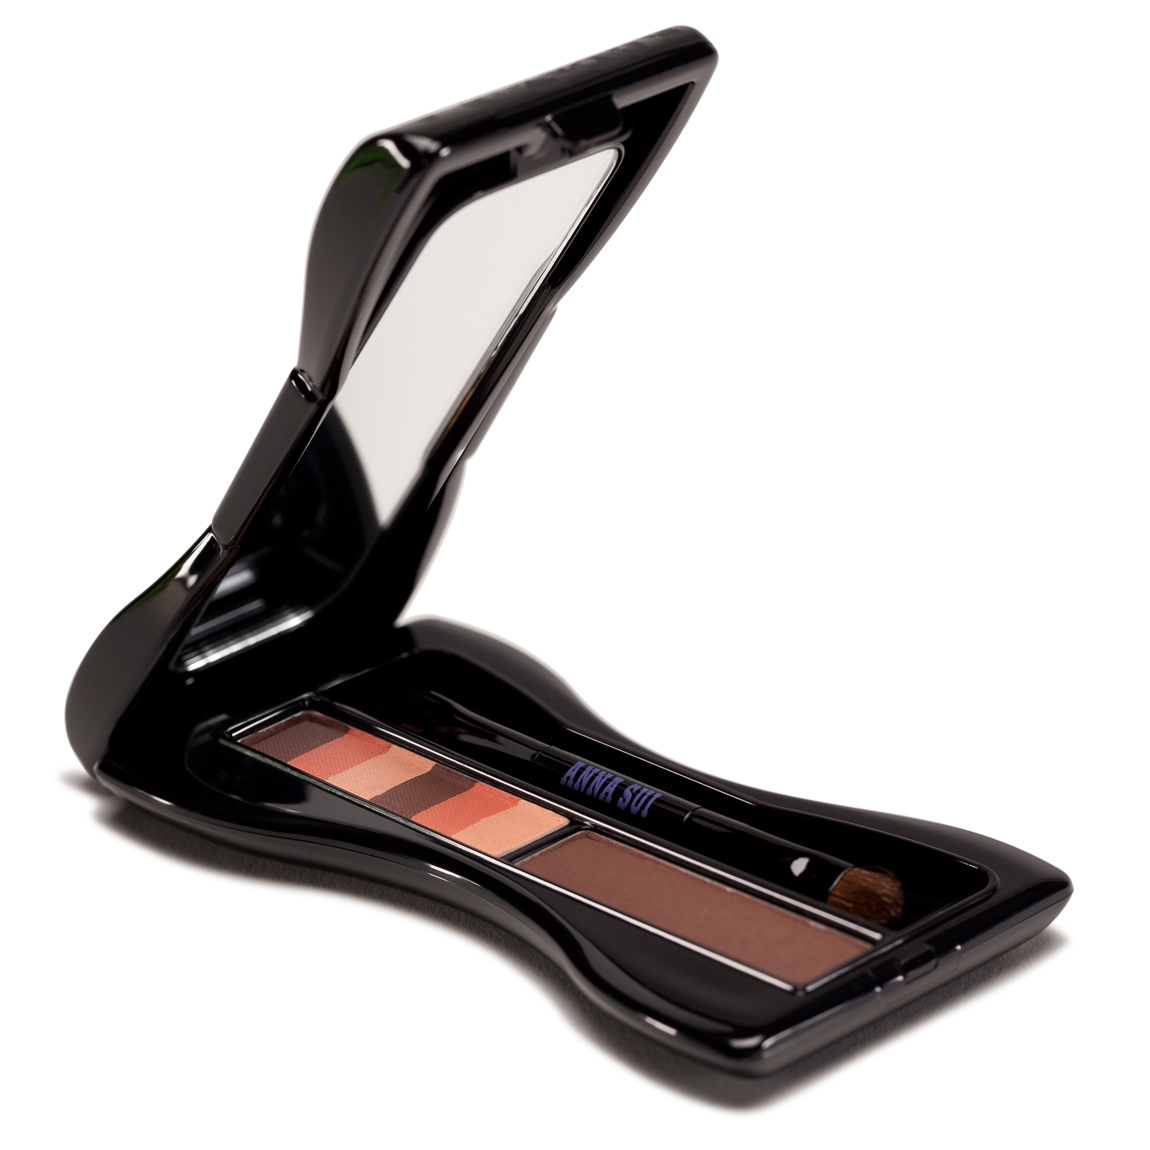 Anna Sui Eyebrow Color Compact 01